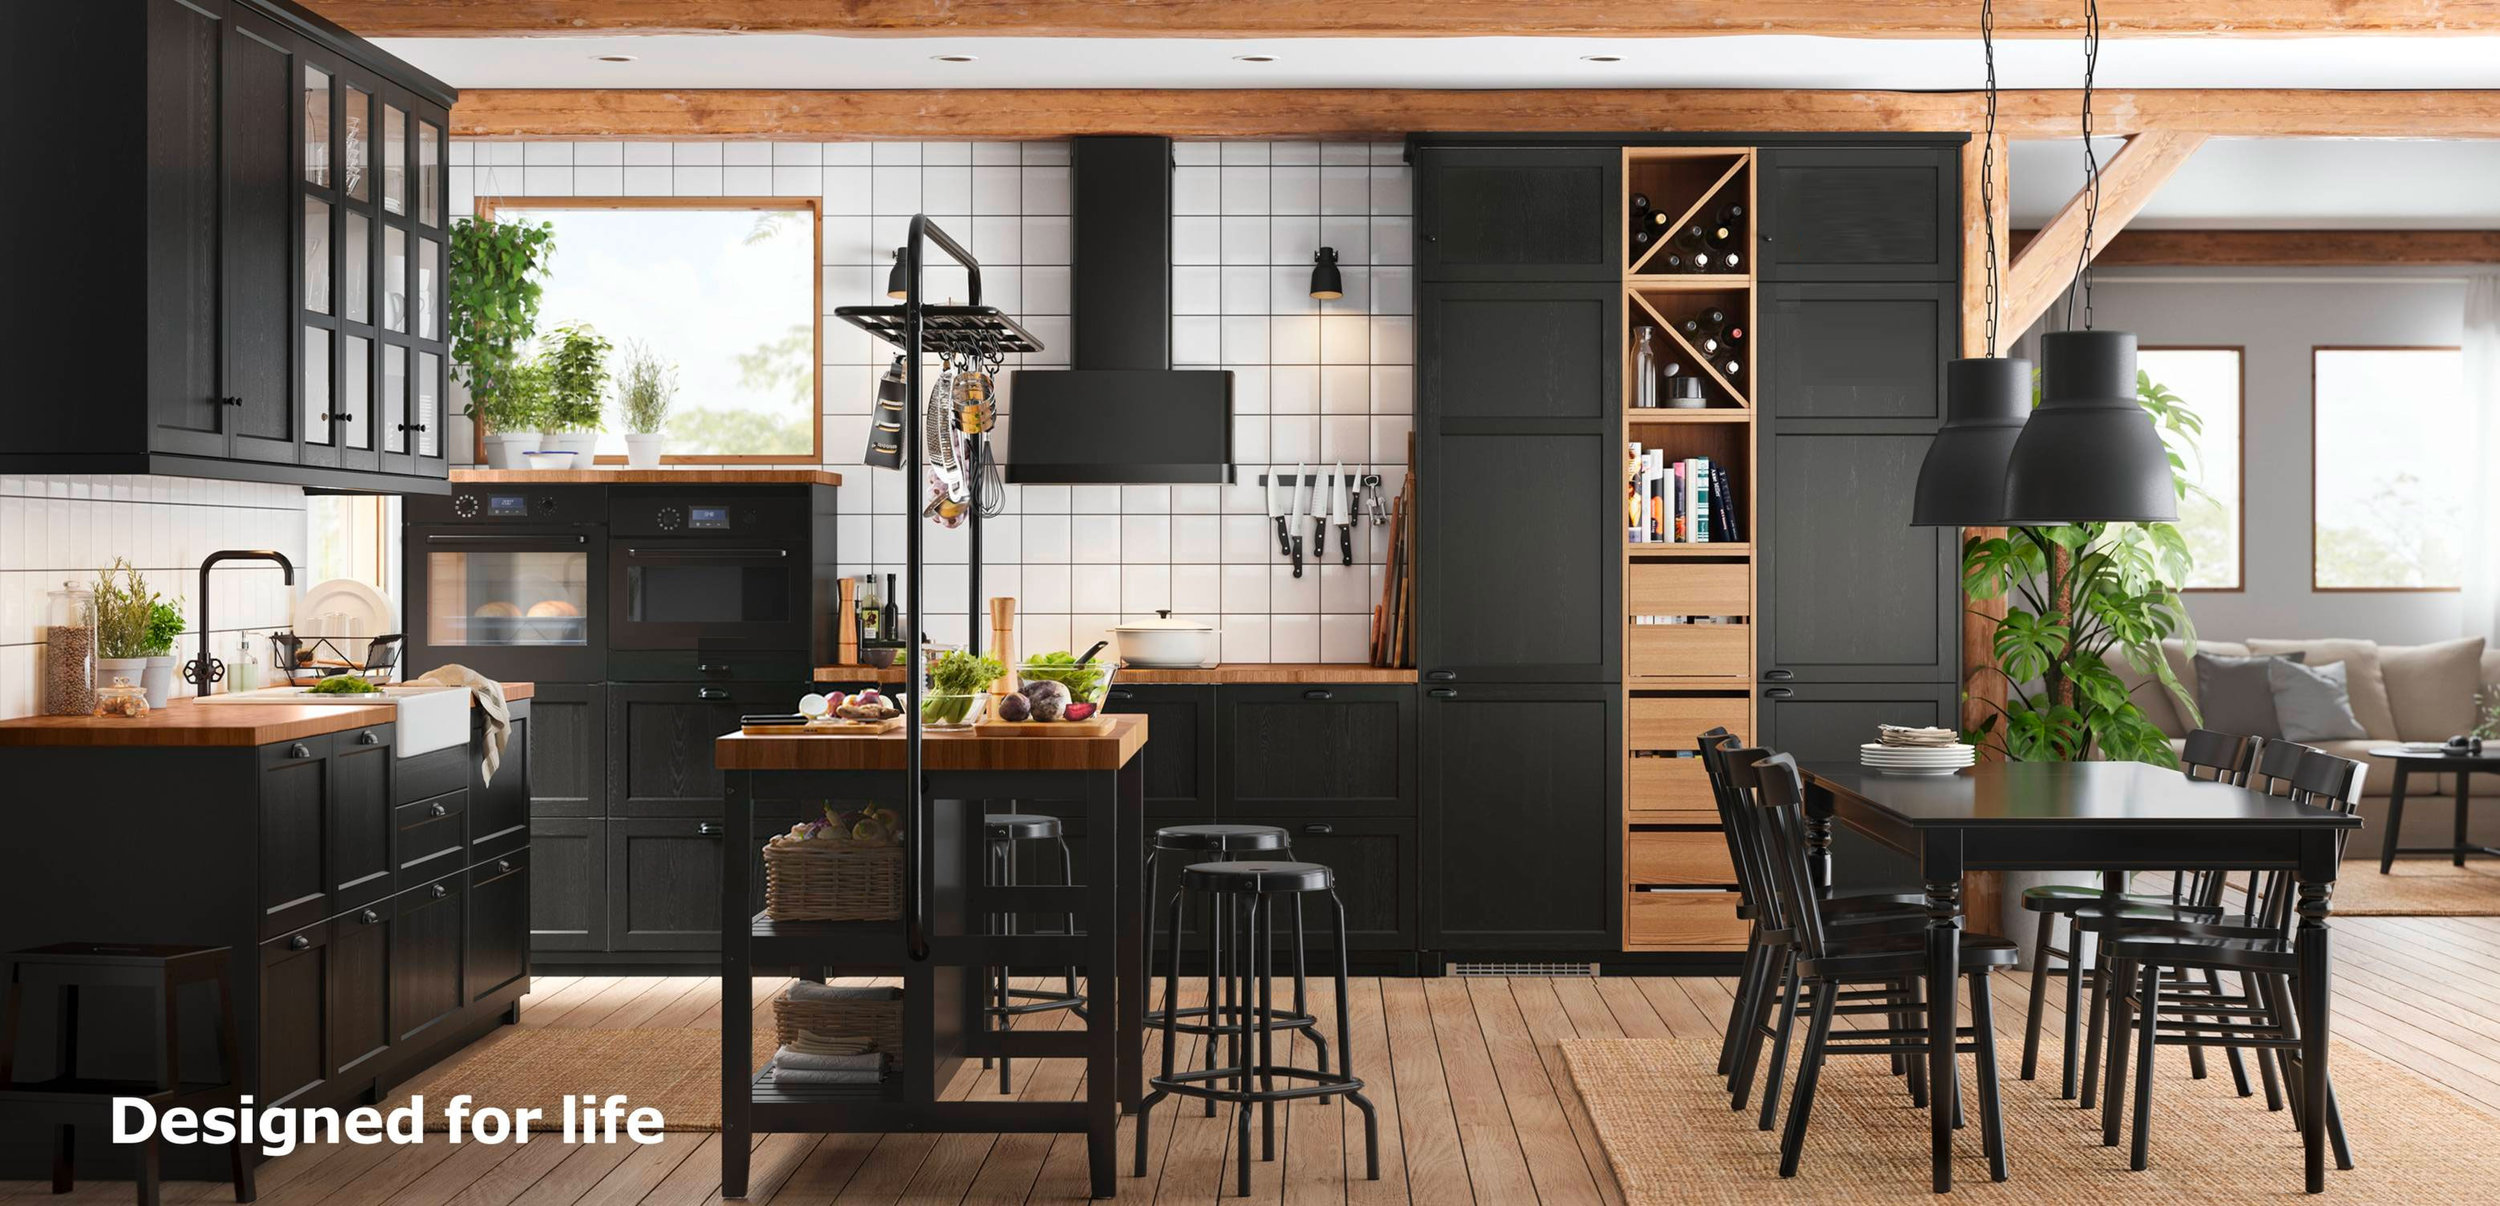 20 Top Picks from the 2019 IKEA Catalogue That Kiwis Will ...